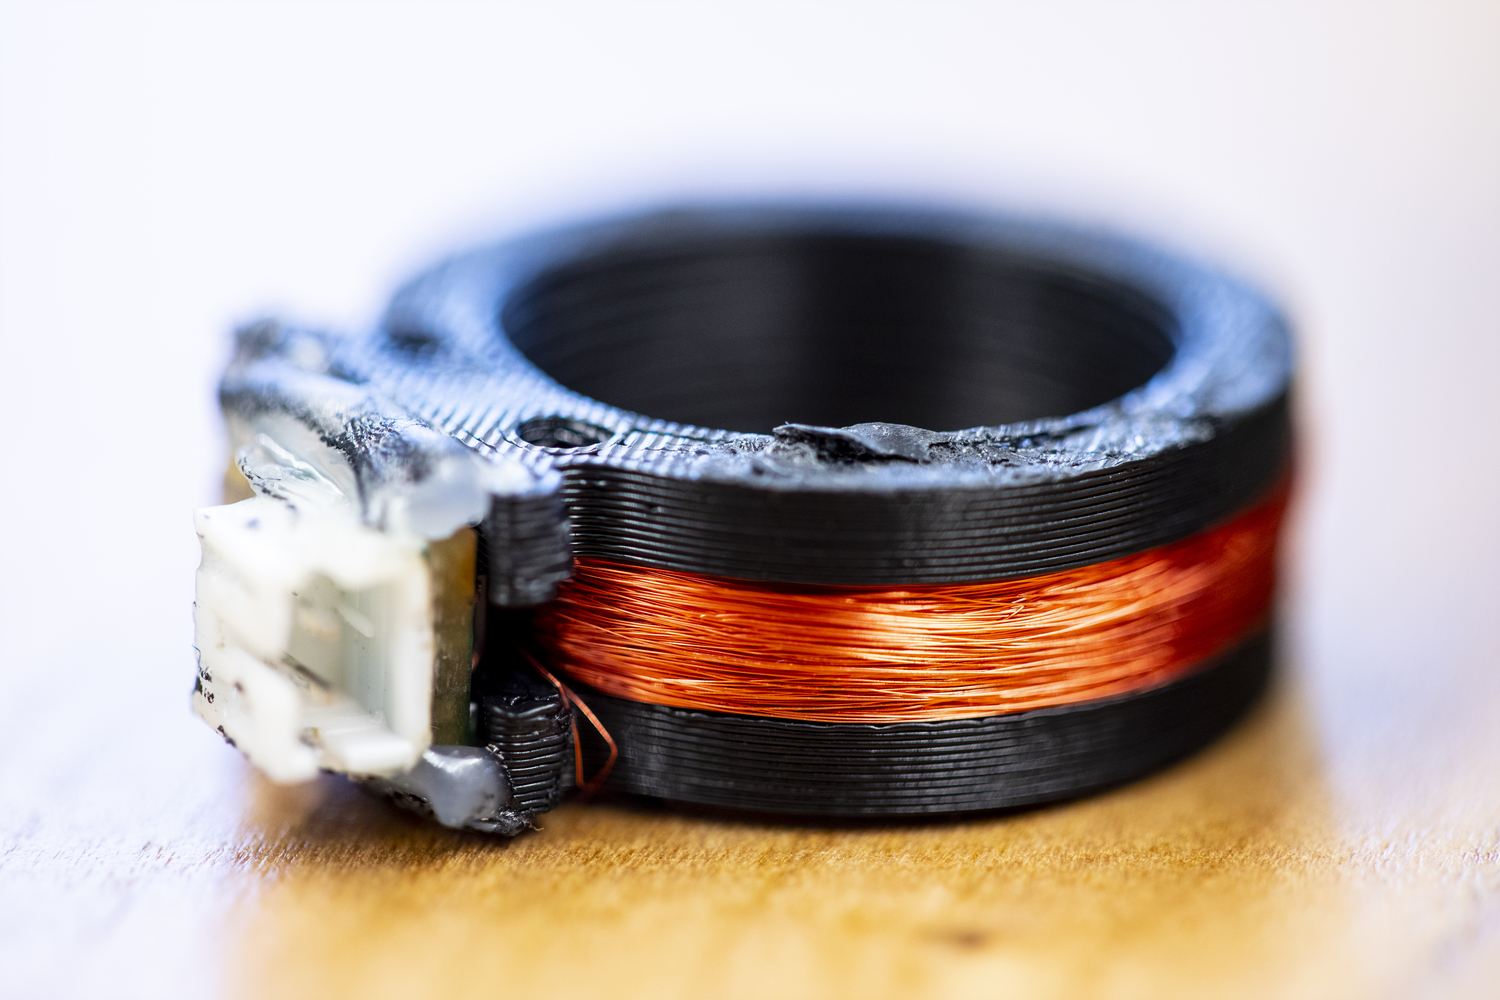 The ring is black plastic with orange copper wire coiled around it